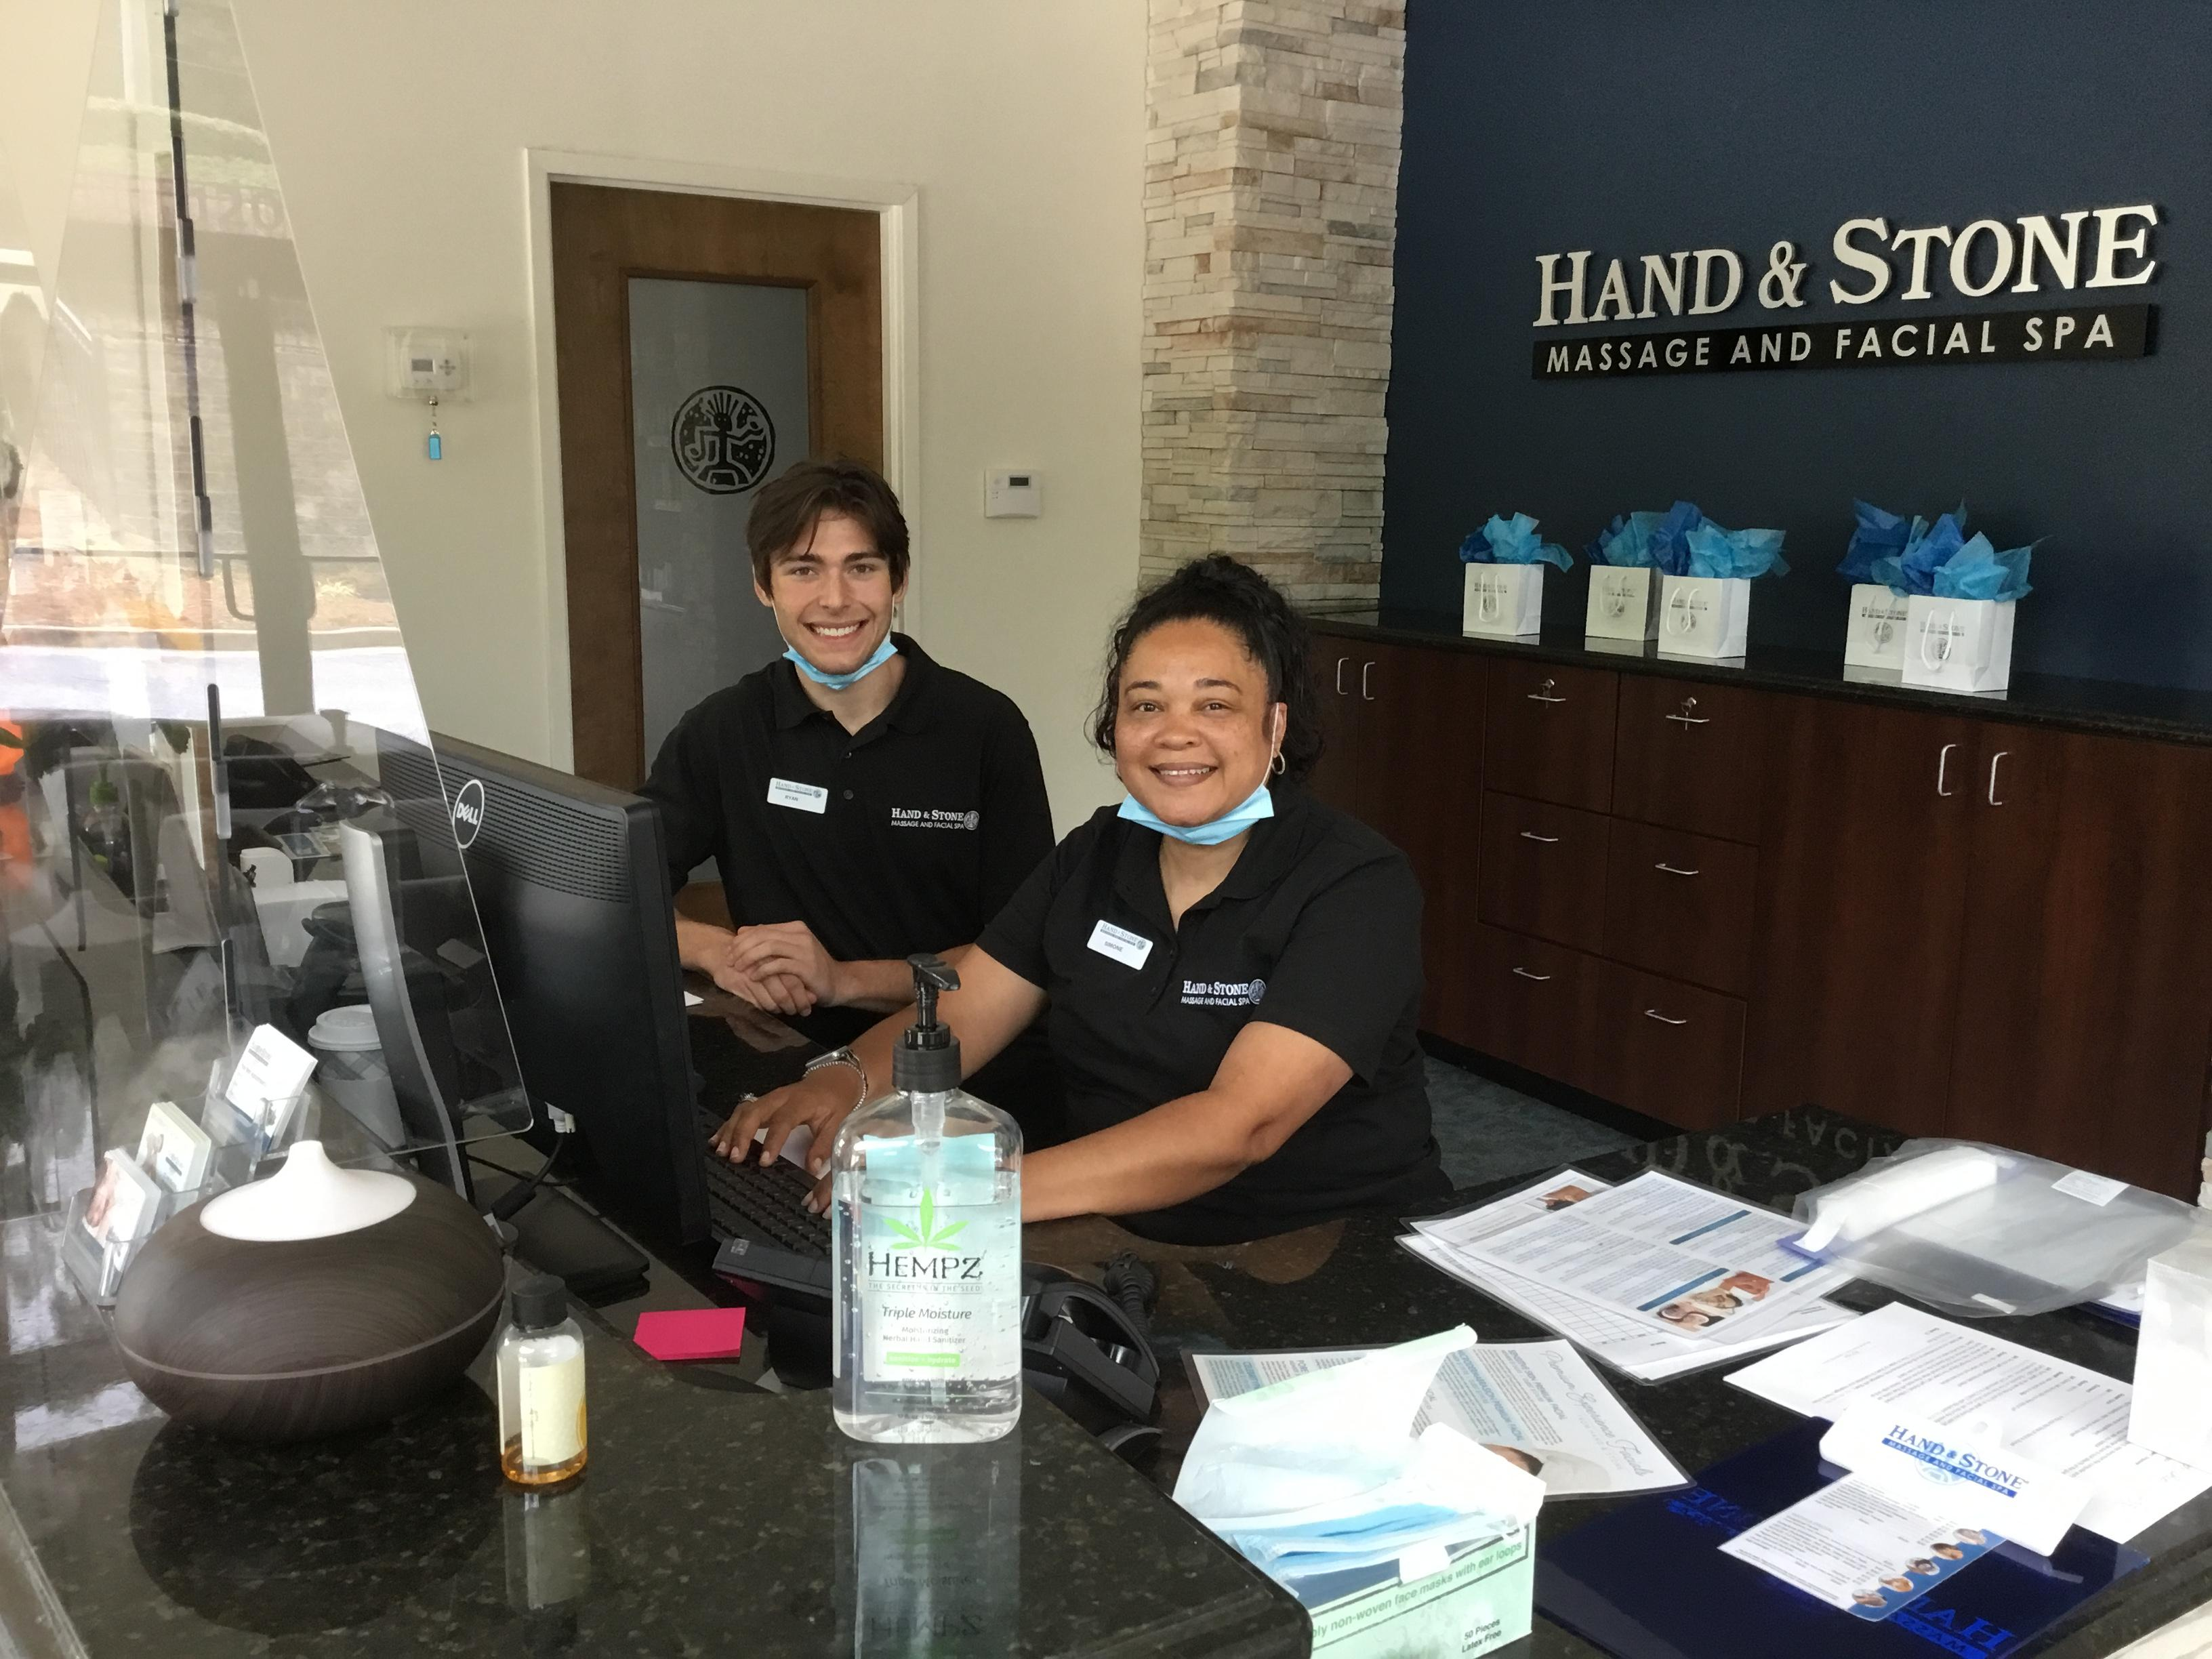 Concierge Desk Spa Associates